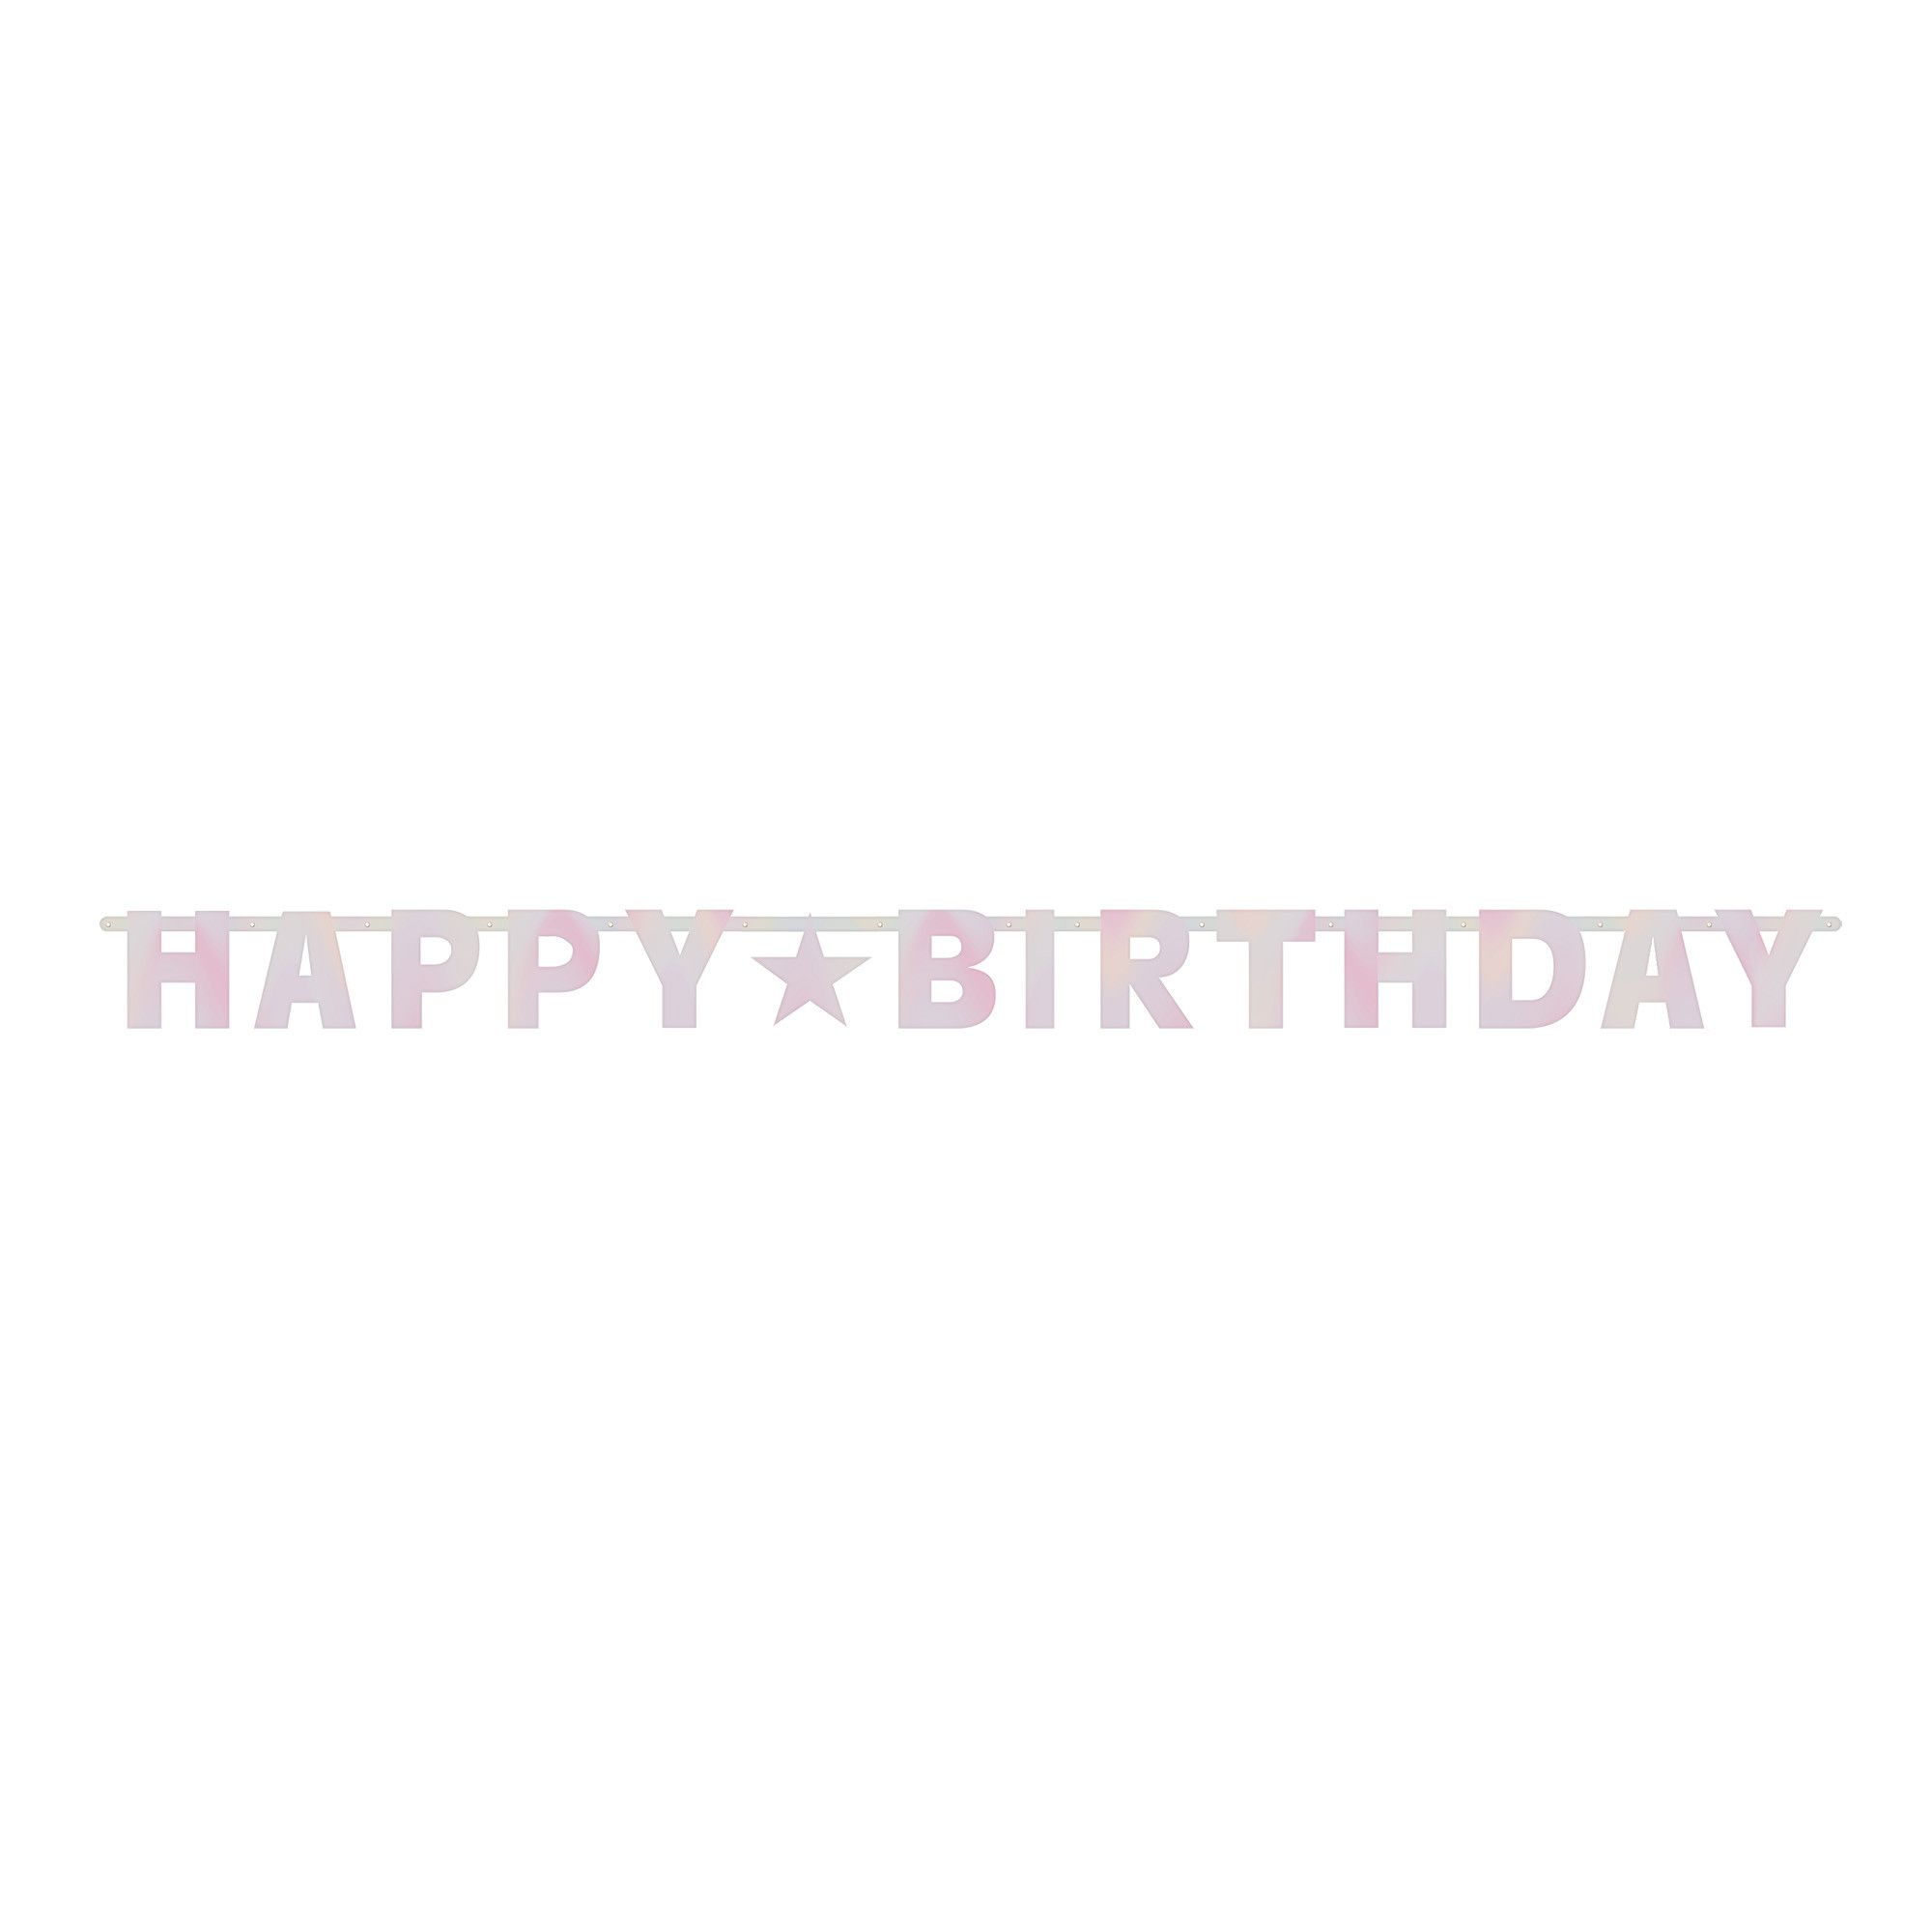 Bday Access Pinks Letter Banner